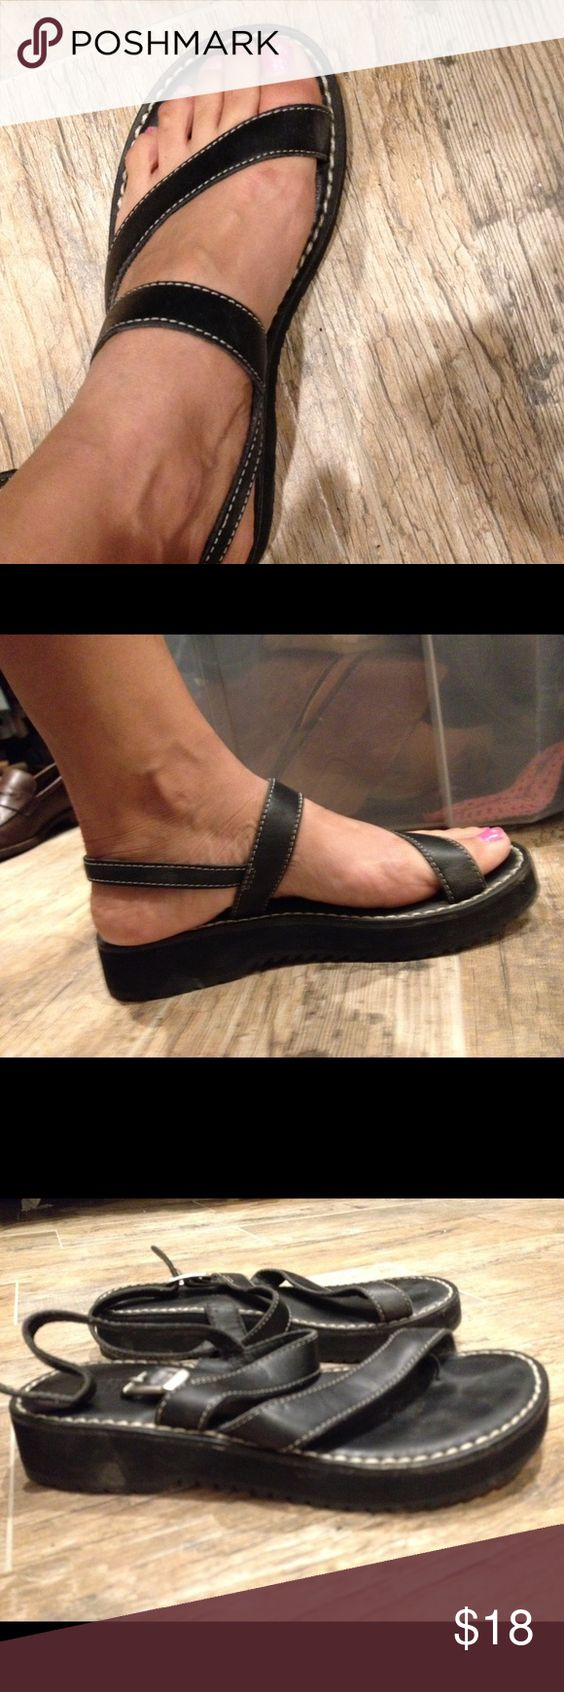 Black sandals size 7 - Black Sandals Simple Black Super Comfy Simple Sandal Size 7 In Excellent Condition